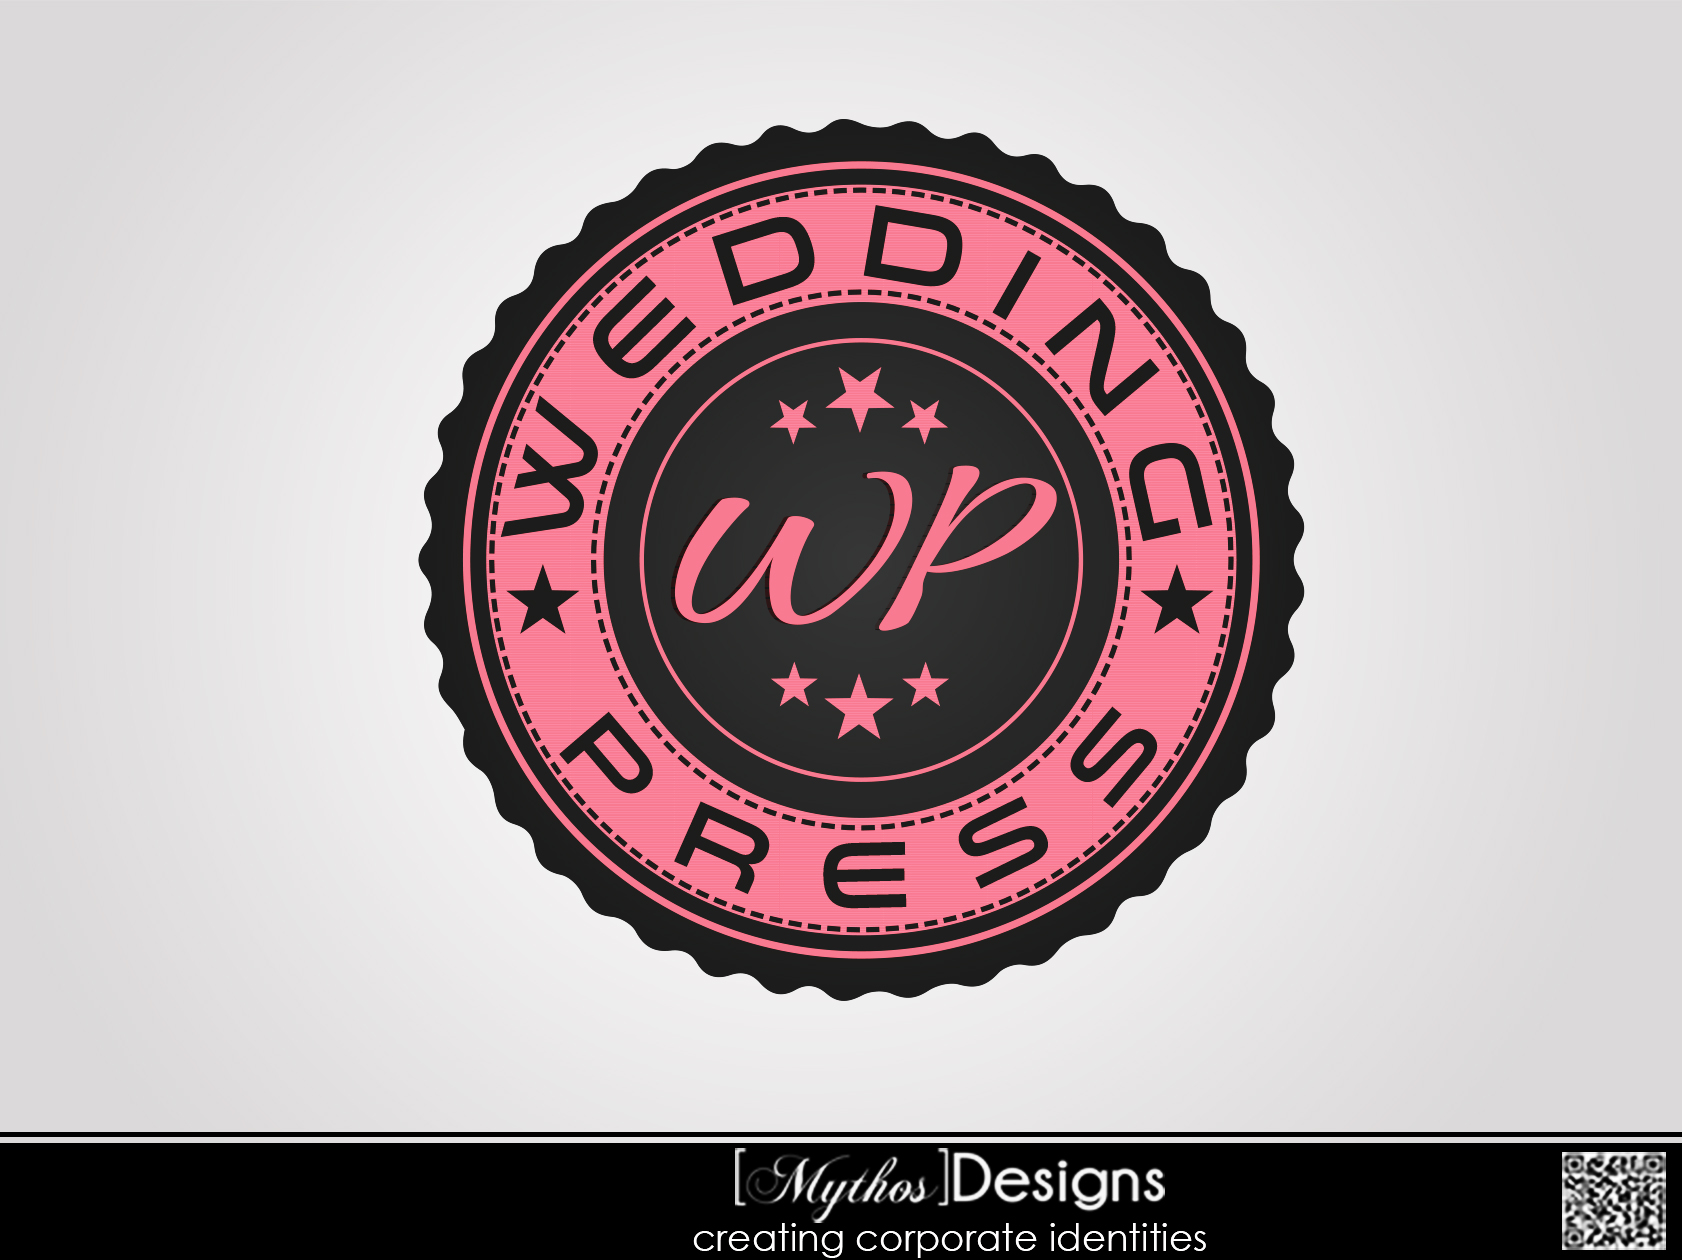 Logo Design by Mythos Designs - Entry No. 20 in the Logo Design Contest Wedding Writes Logo Design.